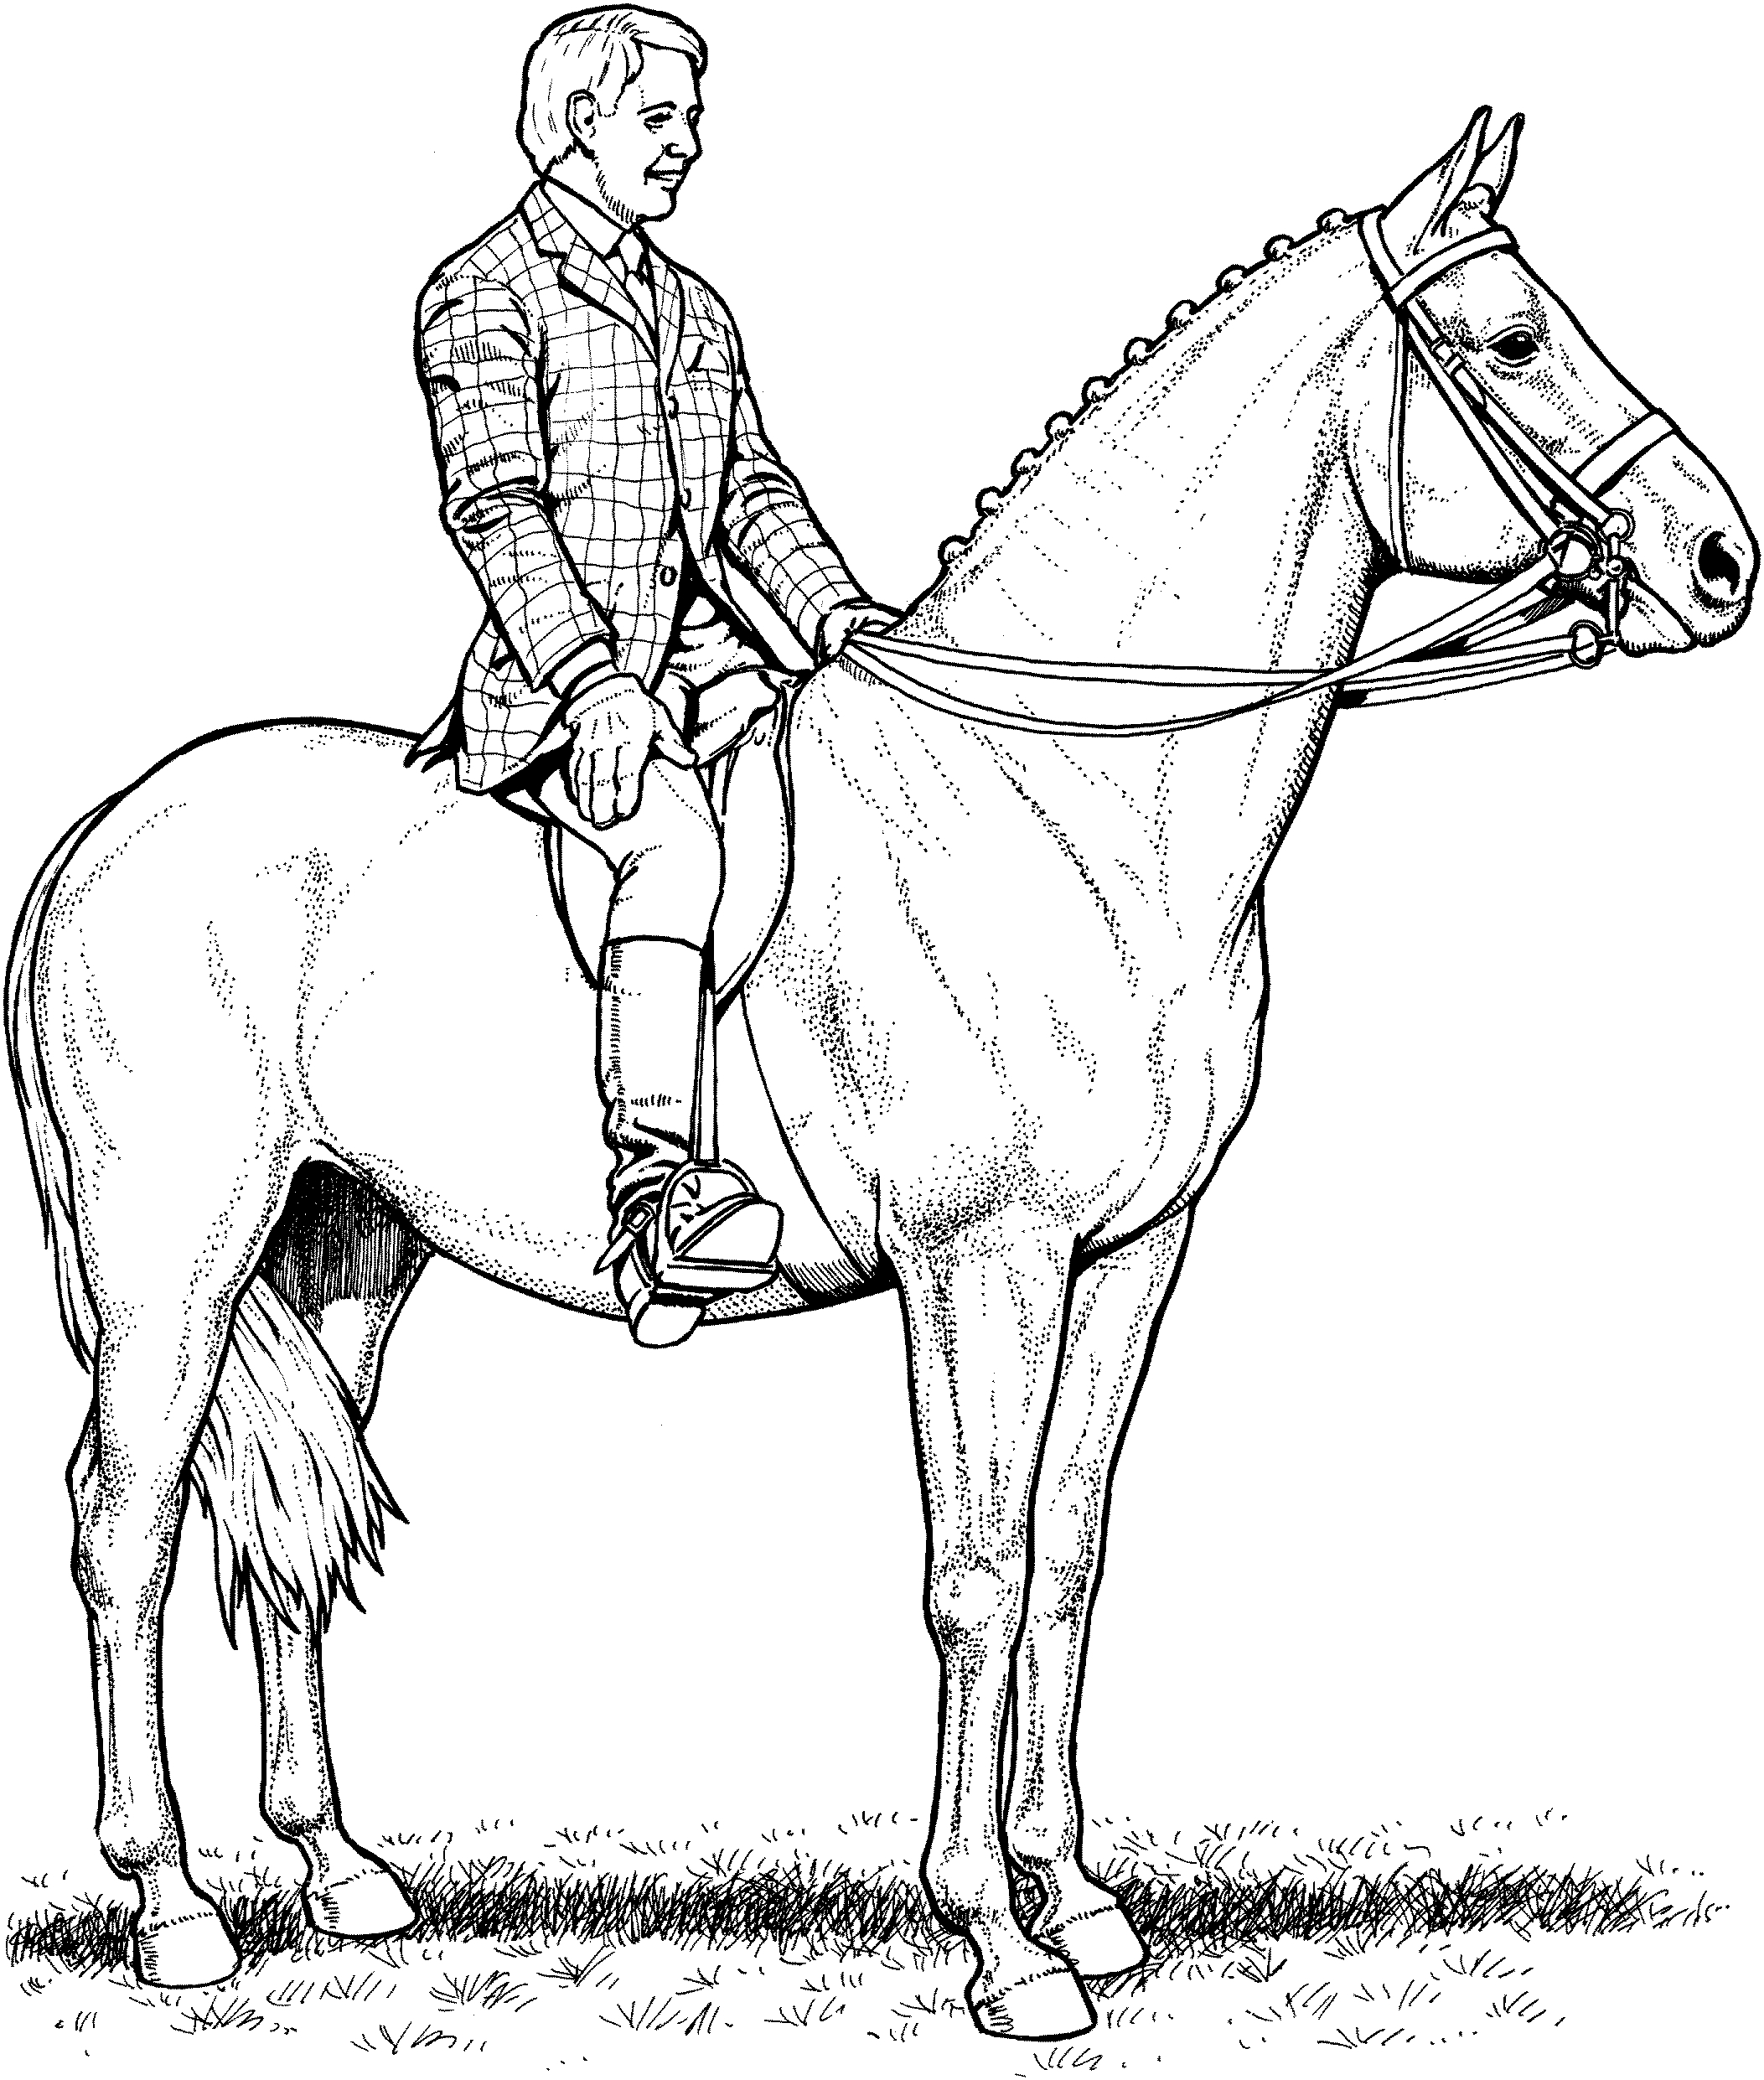 pictures of horses to colour in horse coloring pages for adults best coloring pages for kids colour horses to pictures of in